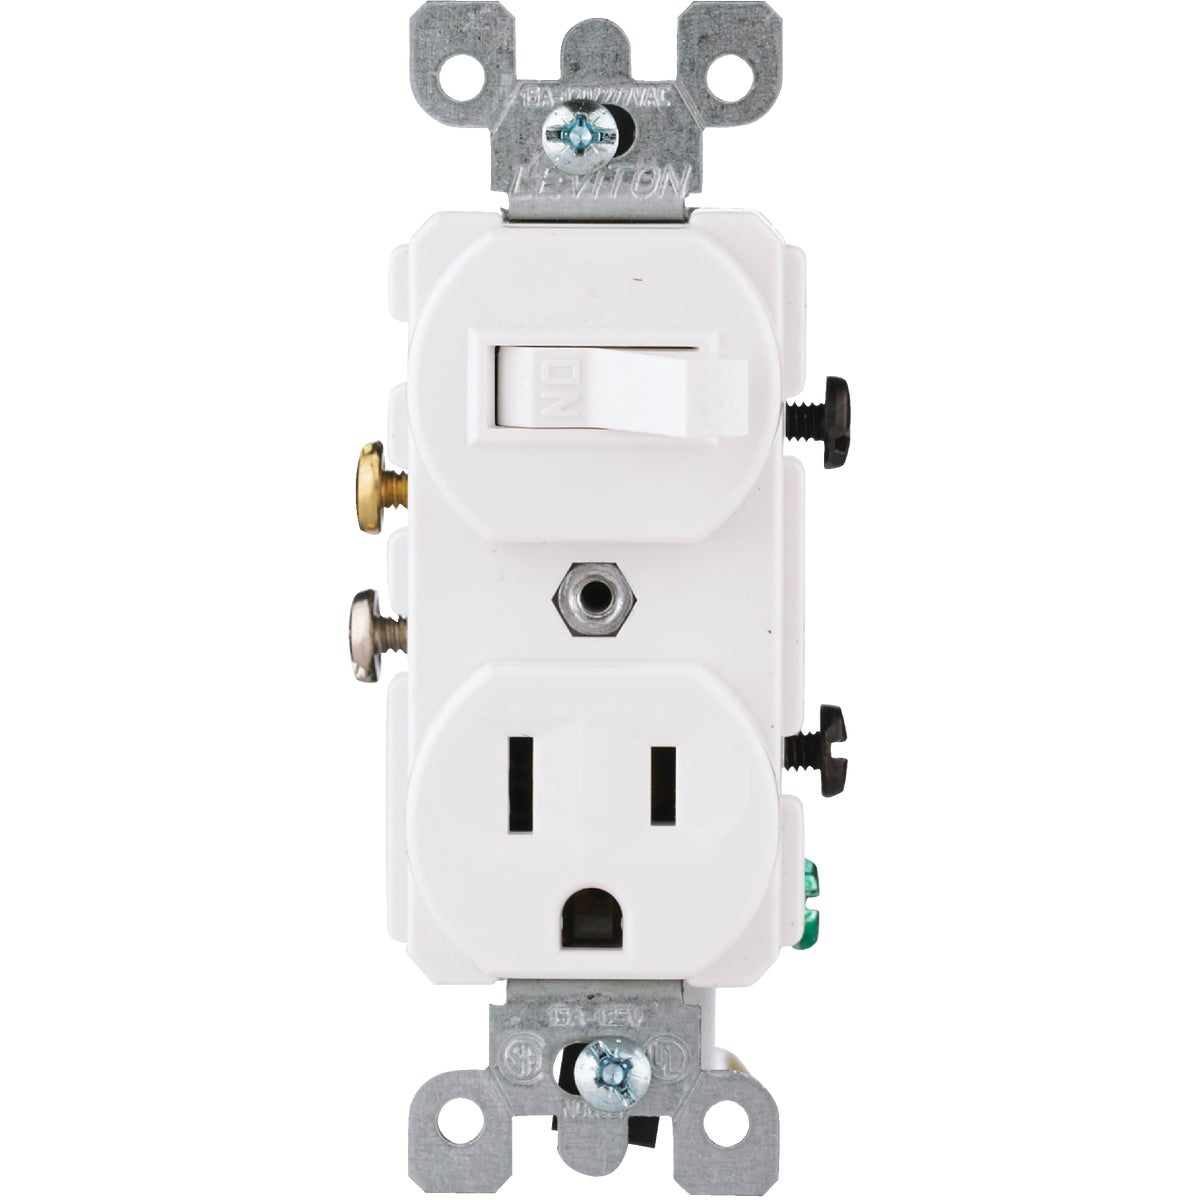 WHT SWITCH/OUTLET